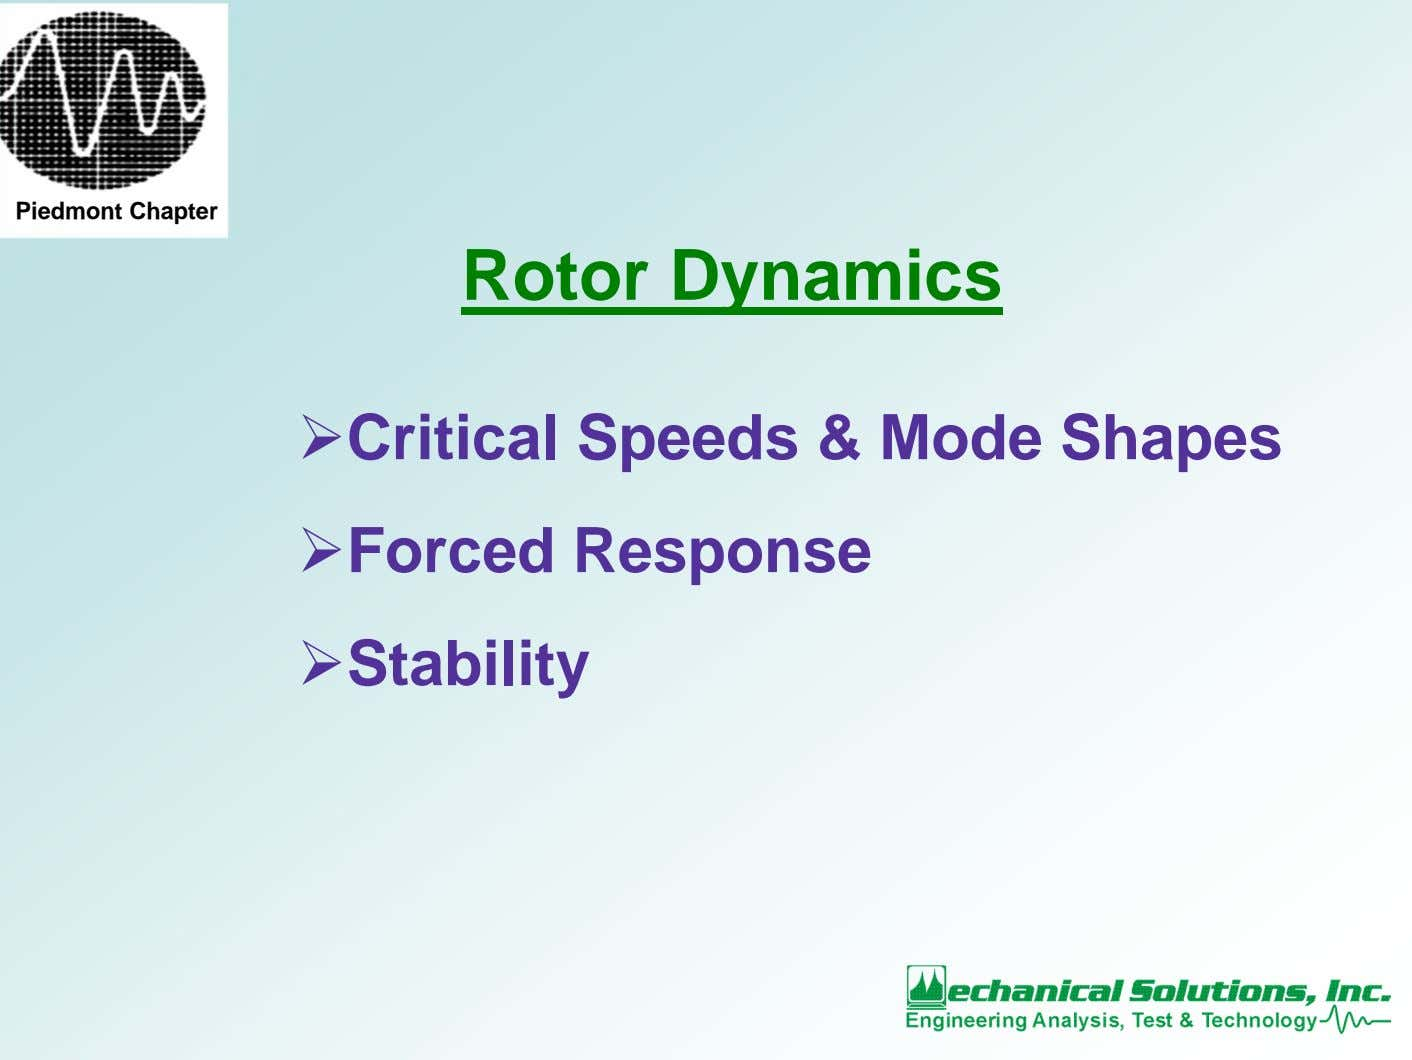 Piedmont Chapter Rotor Dynamics Critical Speeds & Mode Shapes Forced Response Stability